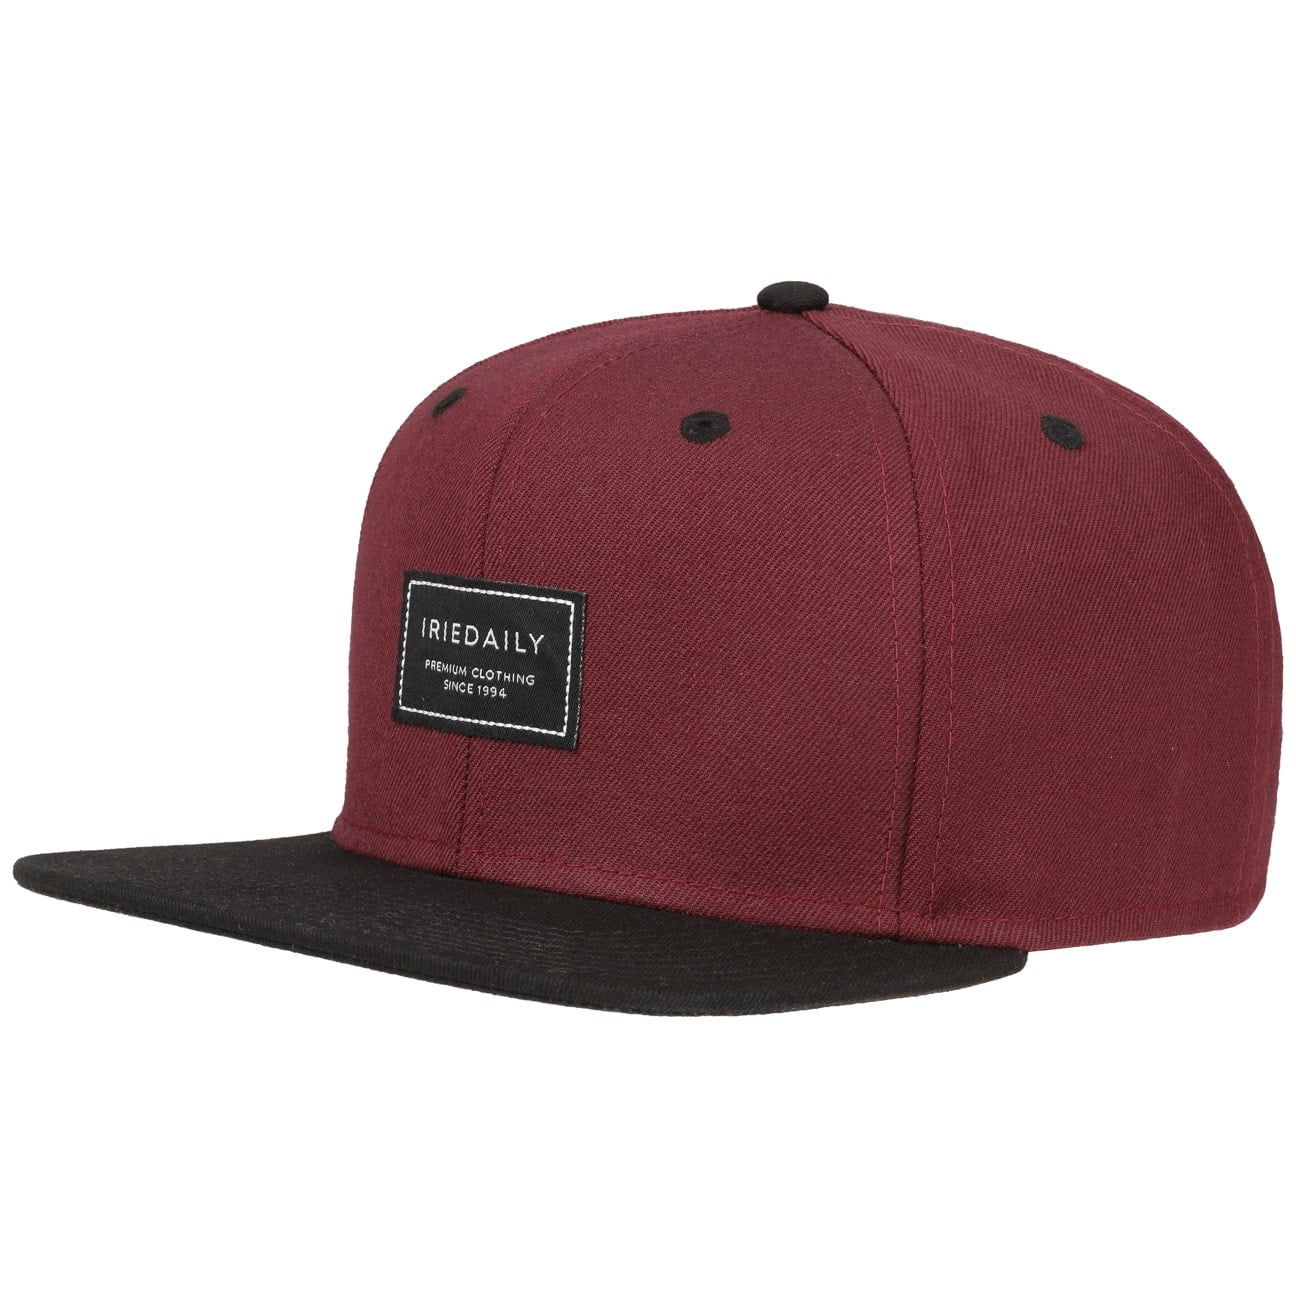 Casquette Daily Club Snapback by iriedaily  baseball cap